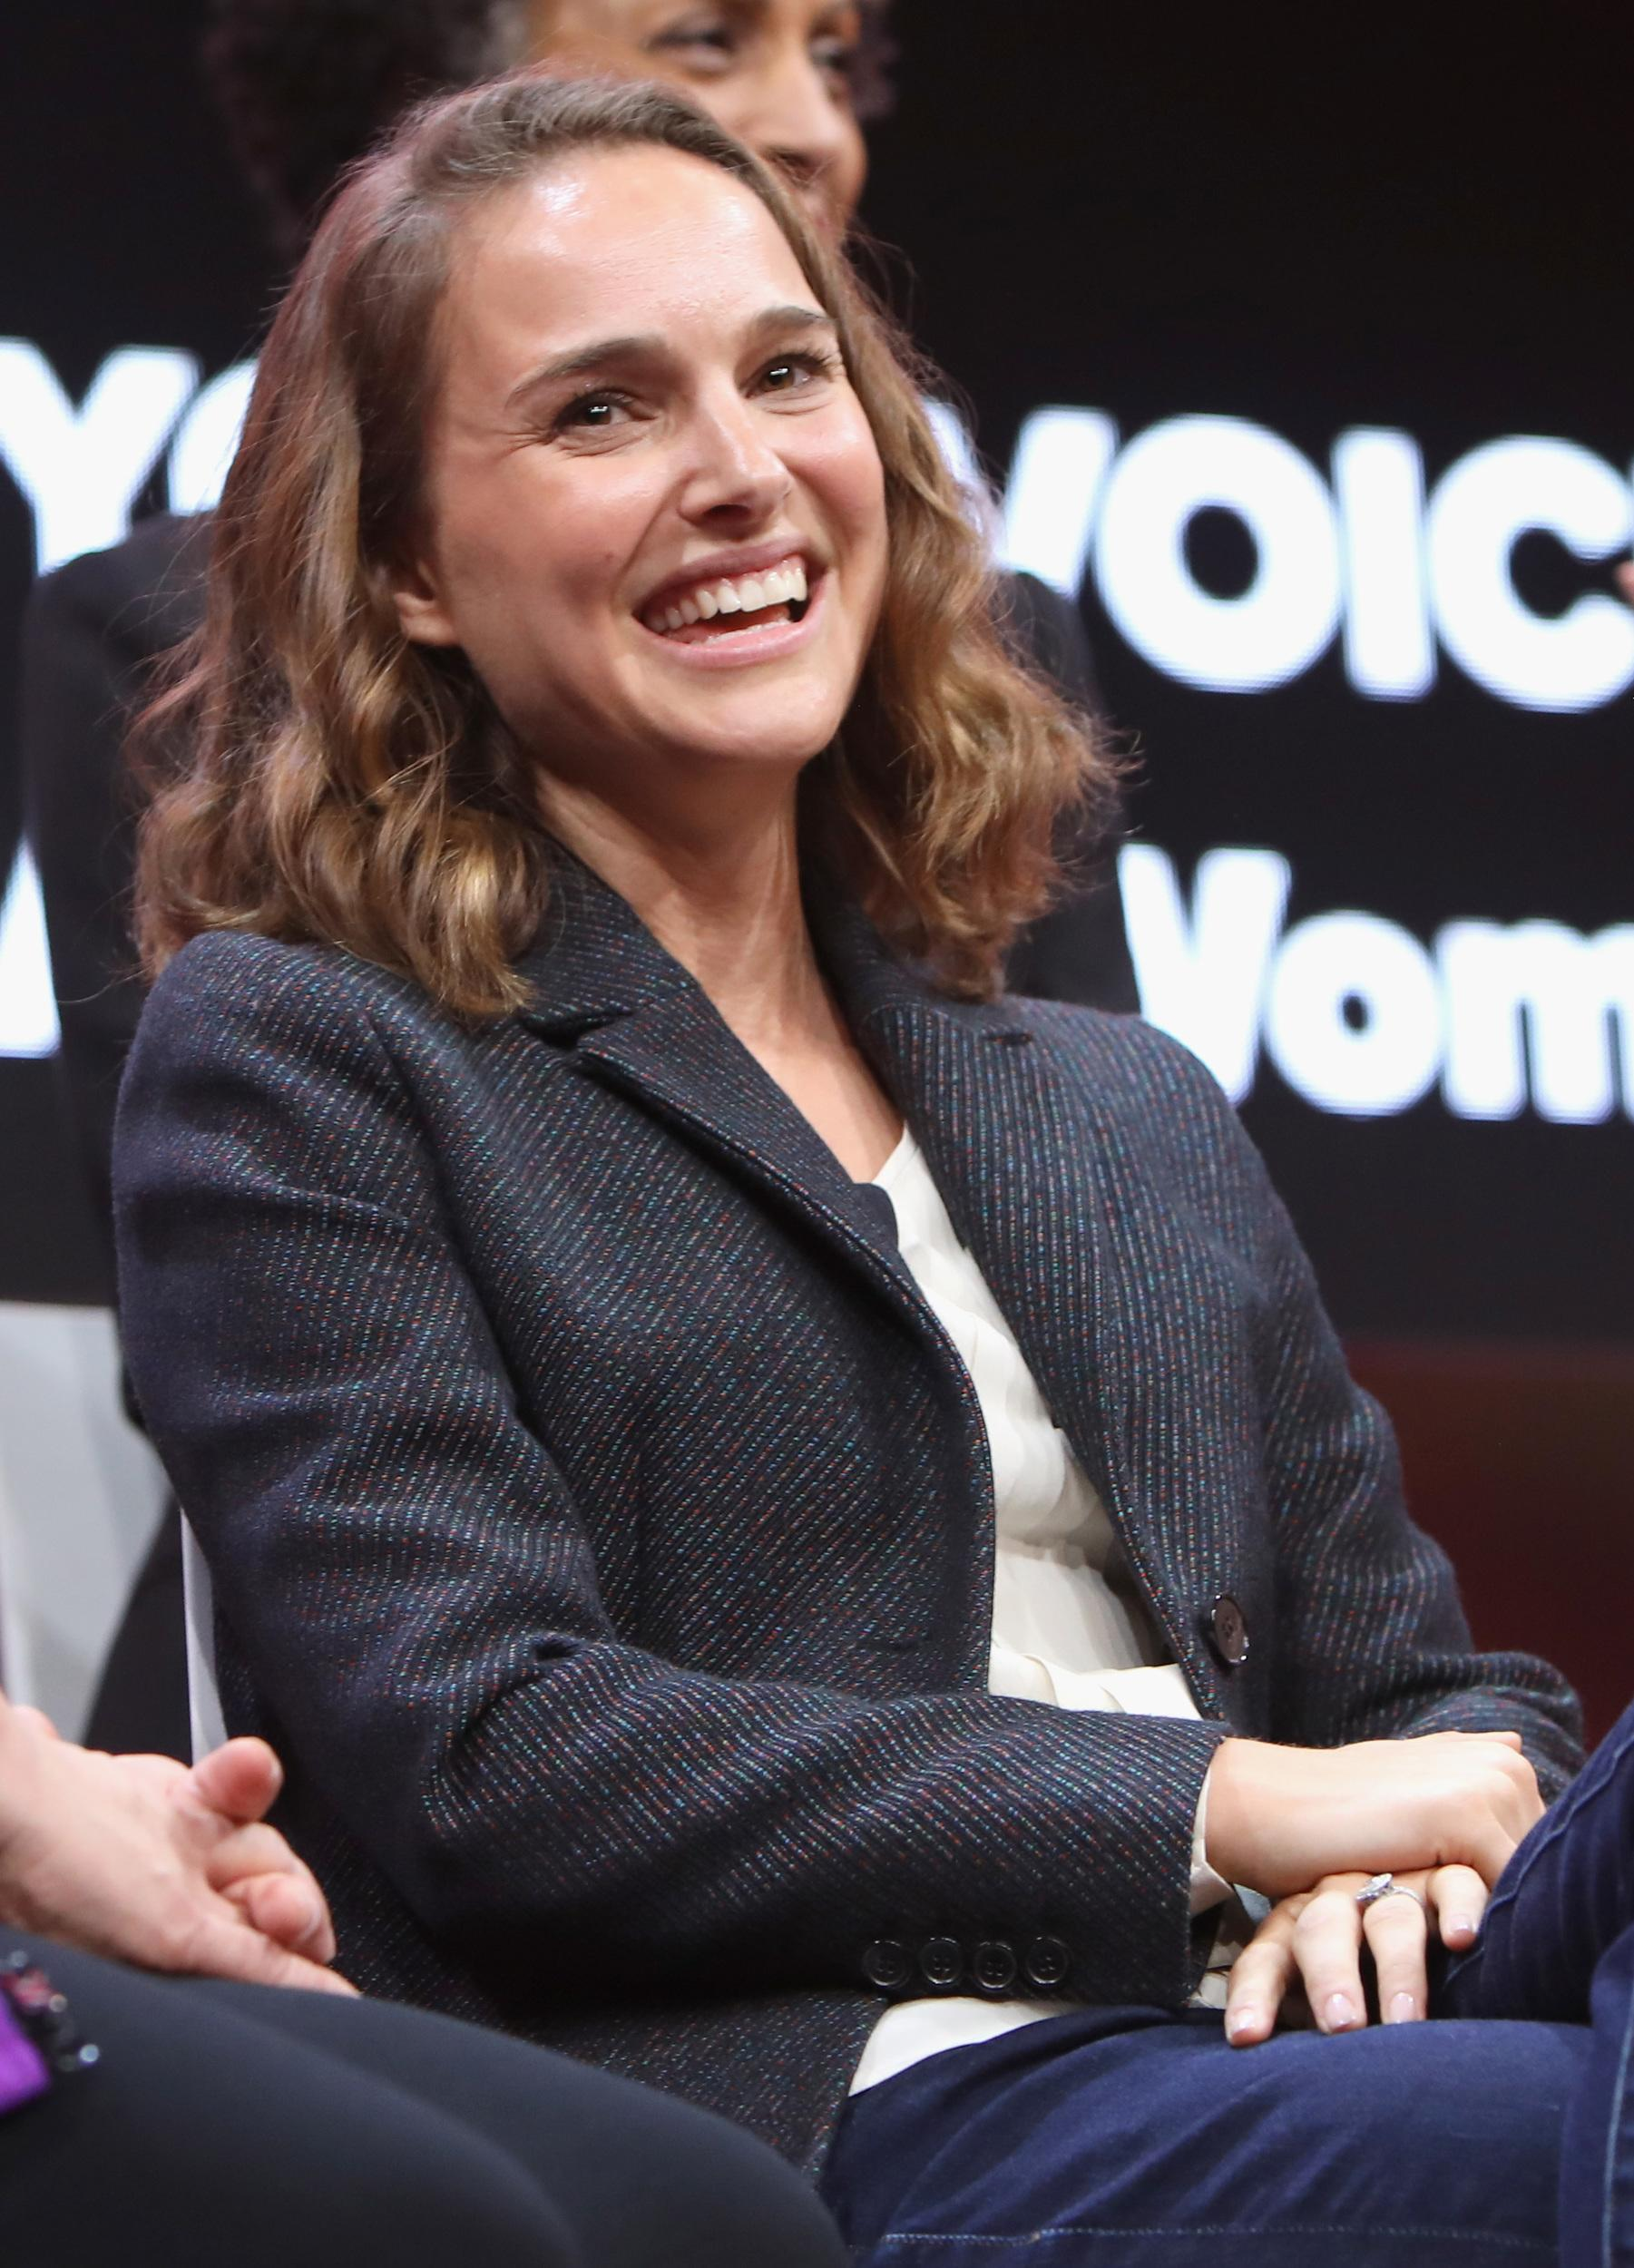 LOS ANGELES, CA - FEBRUARY 05:  Natalie Portman speaks onstage during The 2018 MAKERS Conference at NeueHouse Hollywood on February 5, 2018 in Los Angeles, California.  (Photo by Rachel Murray/Getty Images for MAKERS)